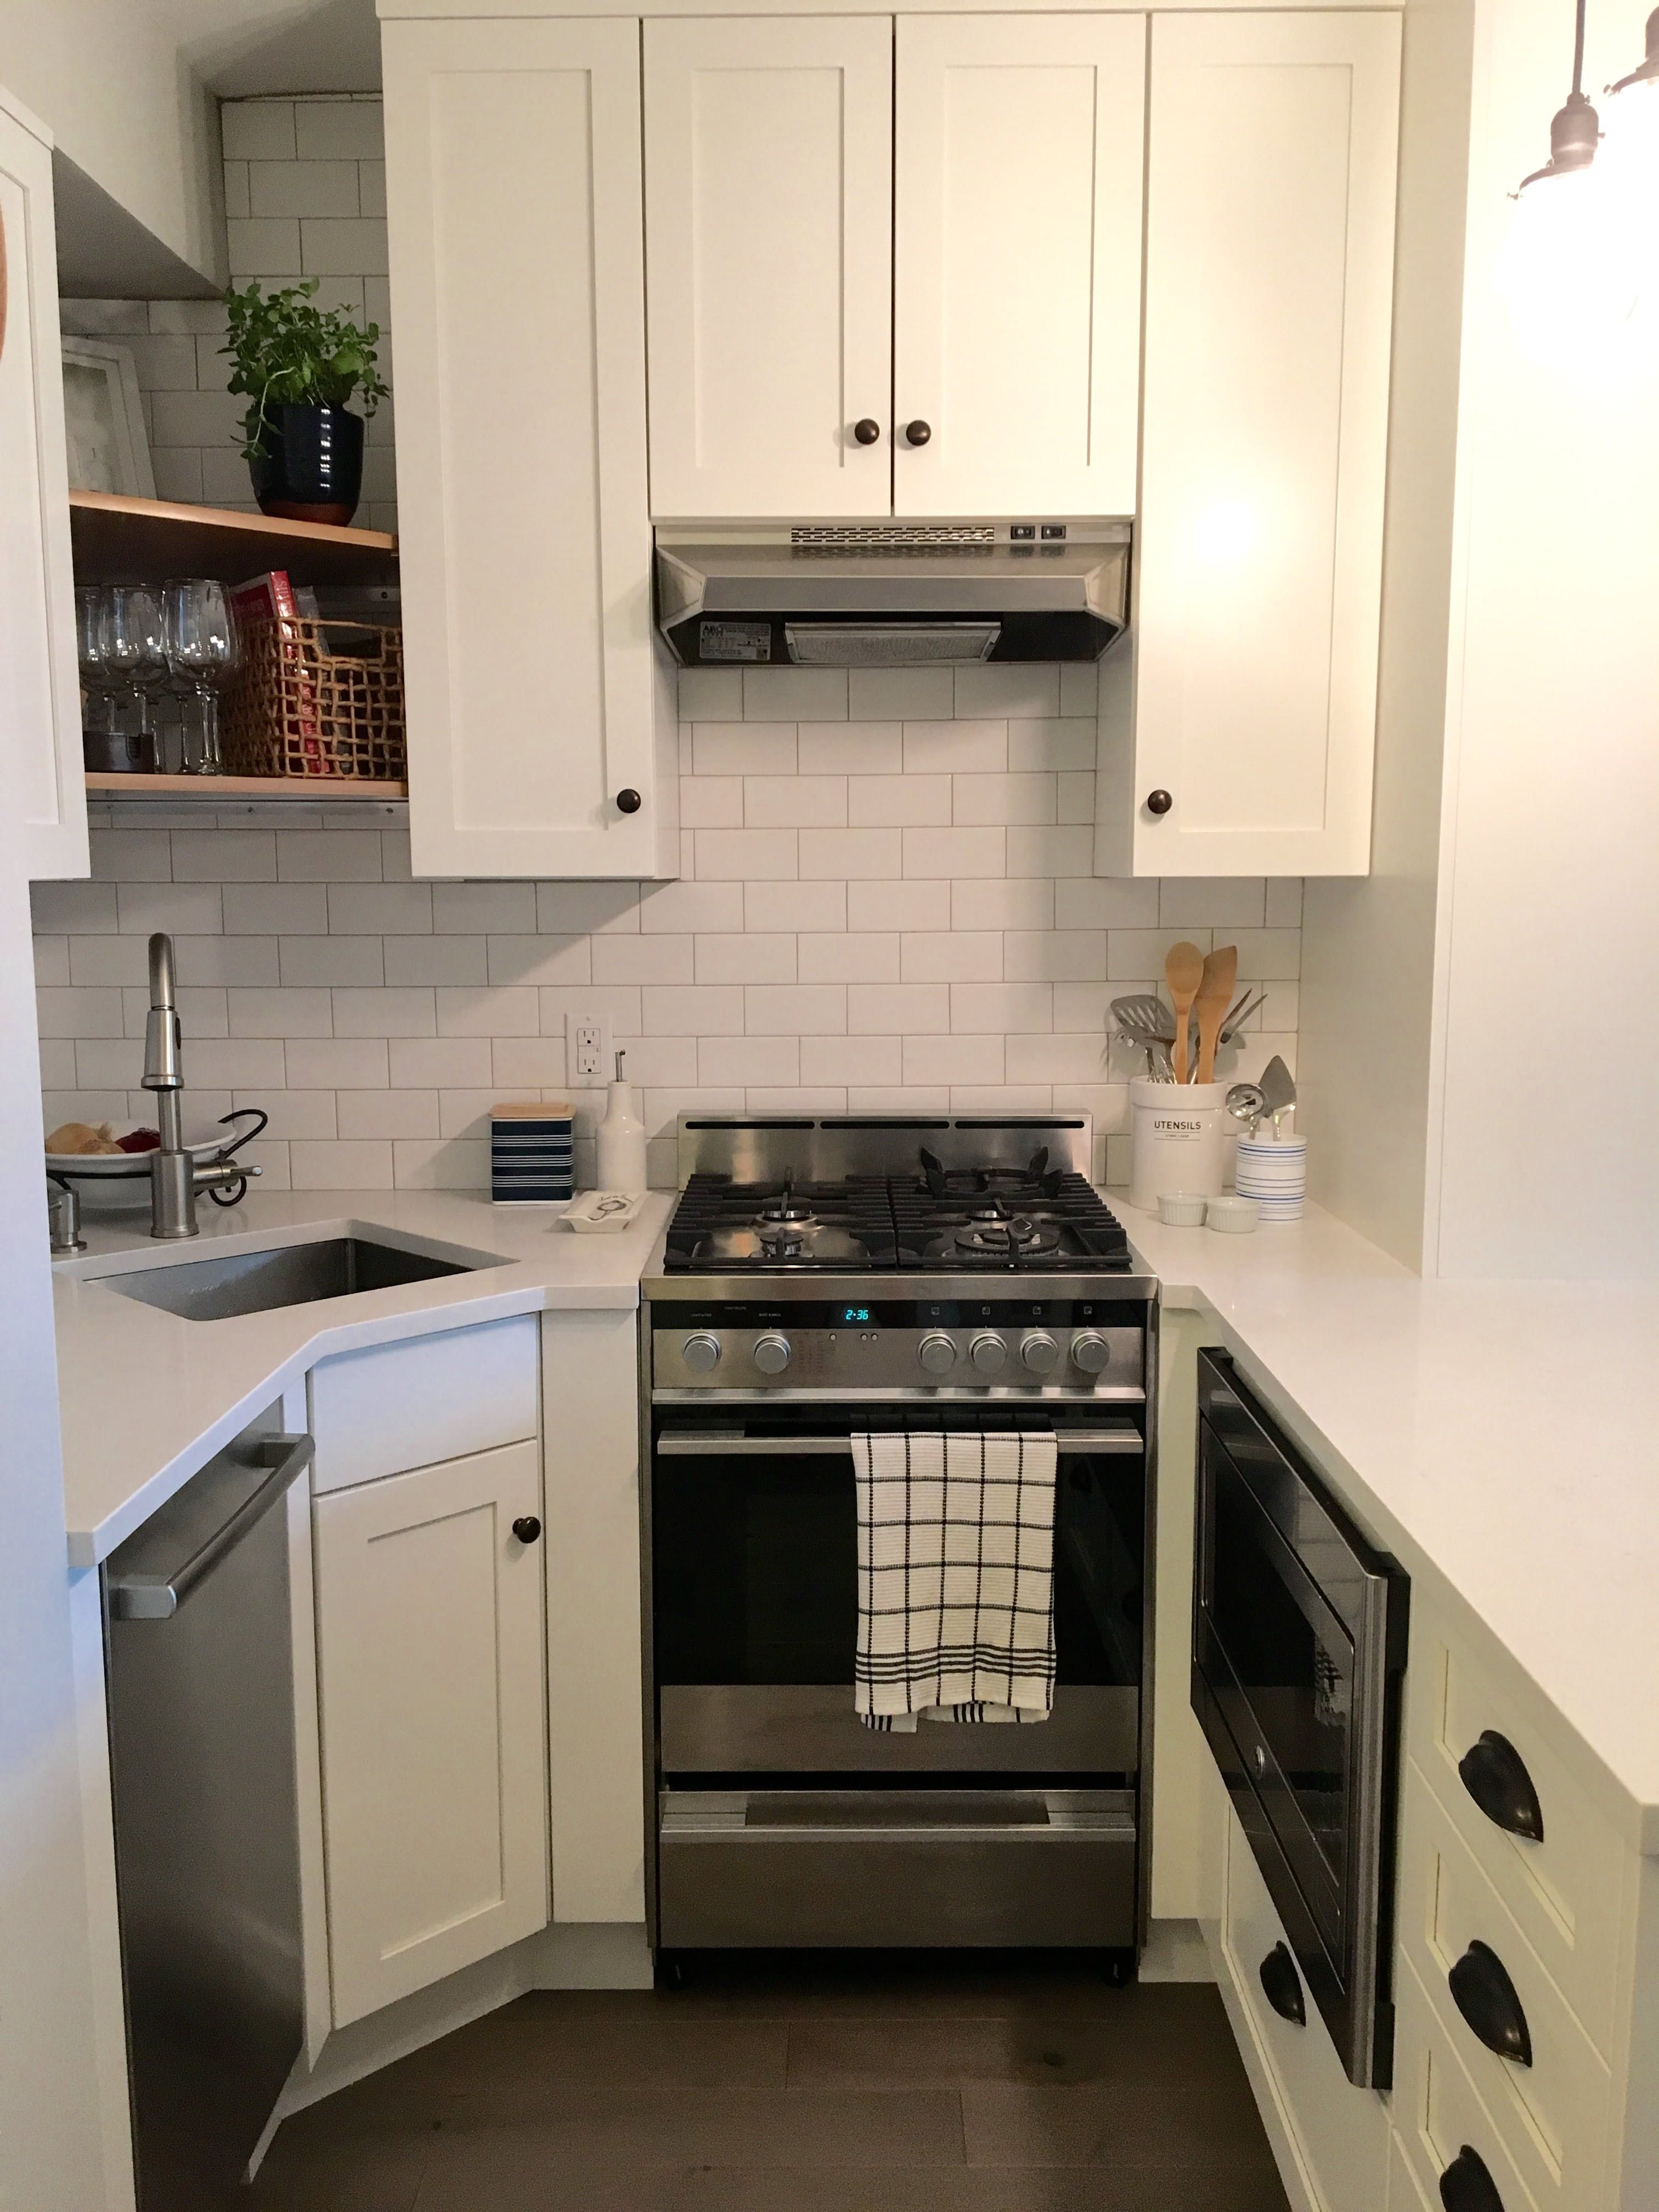 This Complete Studio Makeover Went From Gut To Gorgeous Kitchen Design Small Kitchen Remodel Small Kitchen Remodel